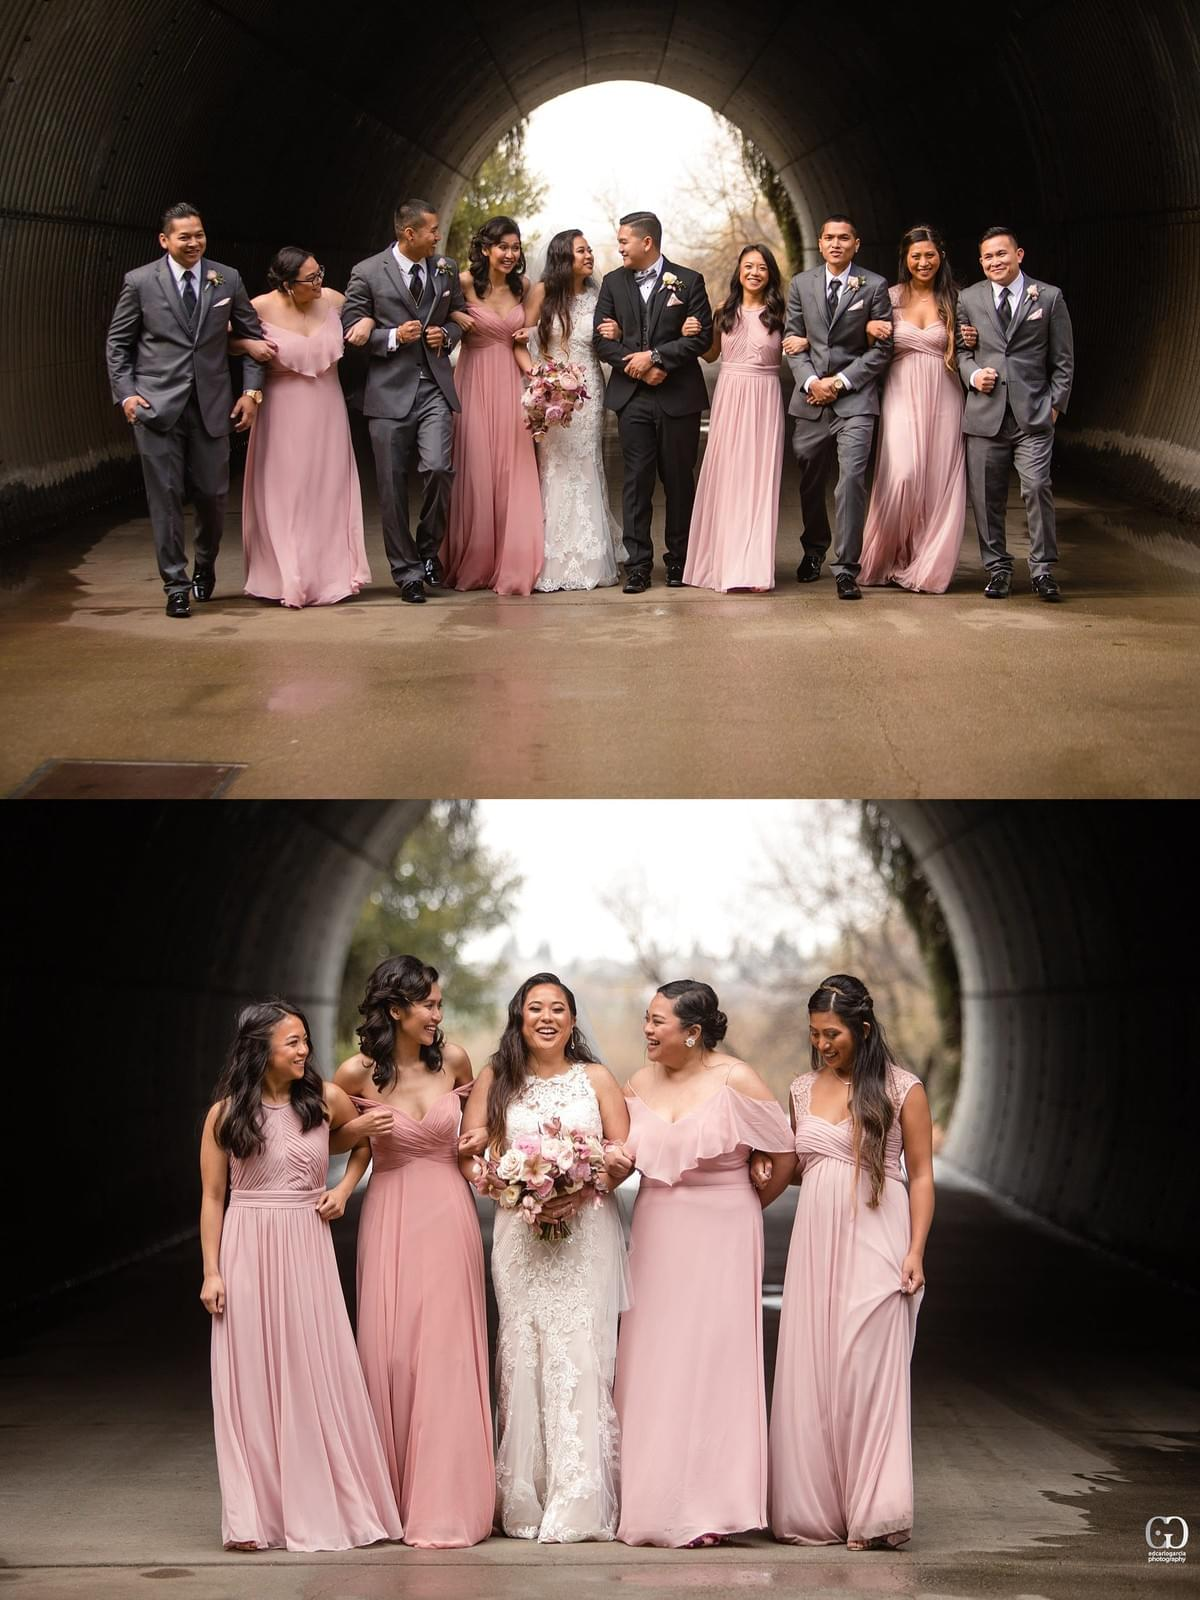 bridges golf club wedding san ramon photographer bridal party bridesmaids tunnel filipino cambodian wedding